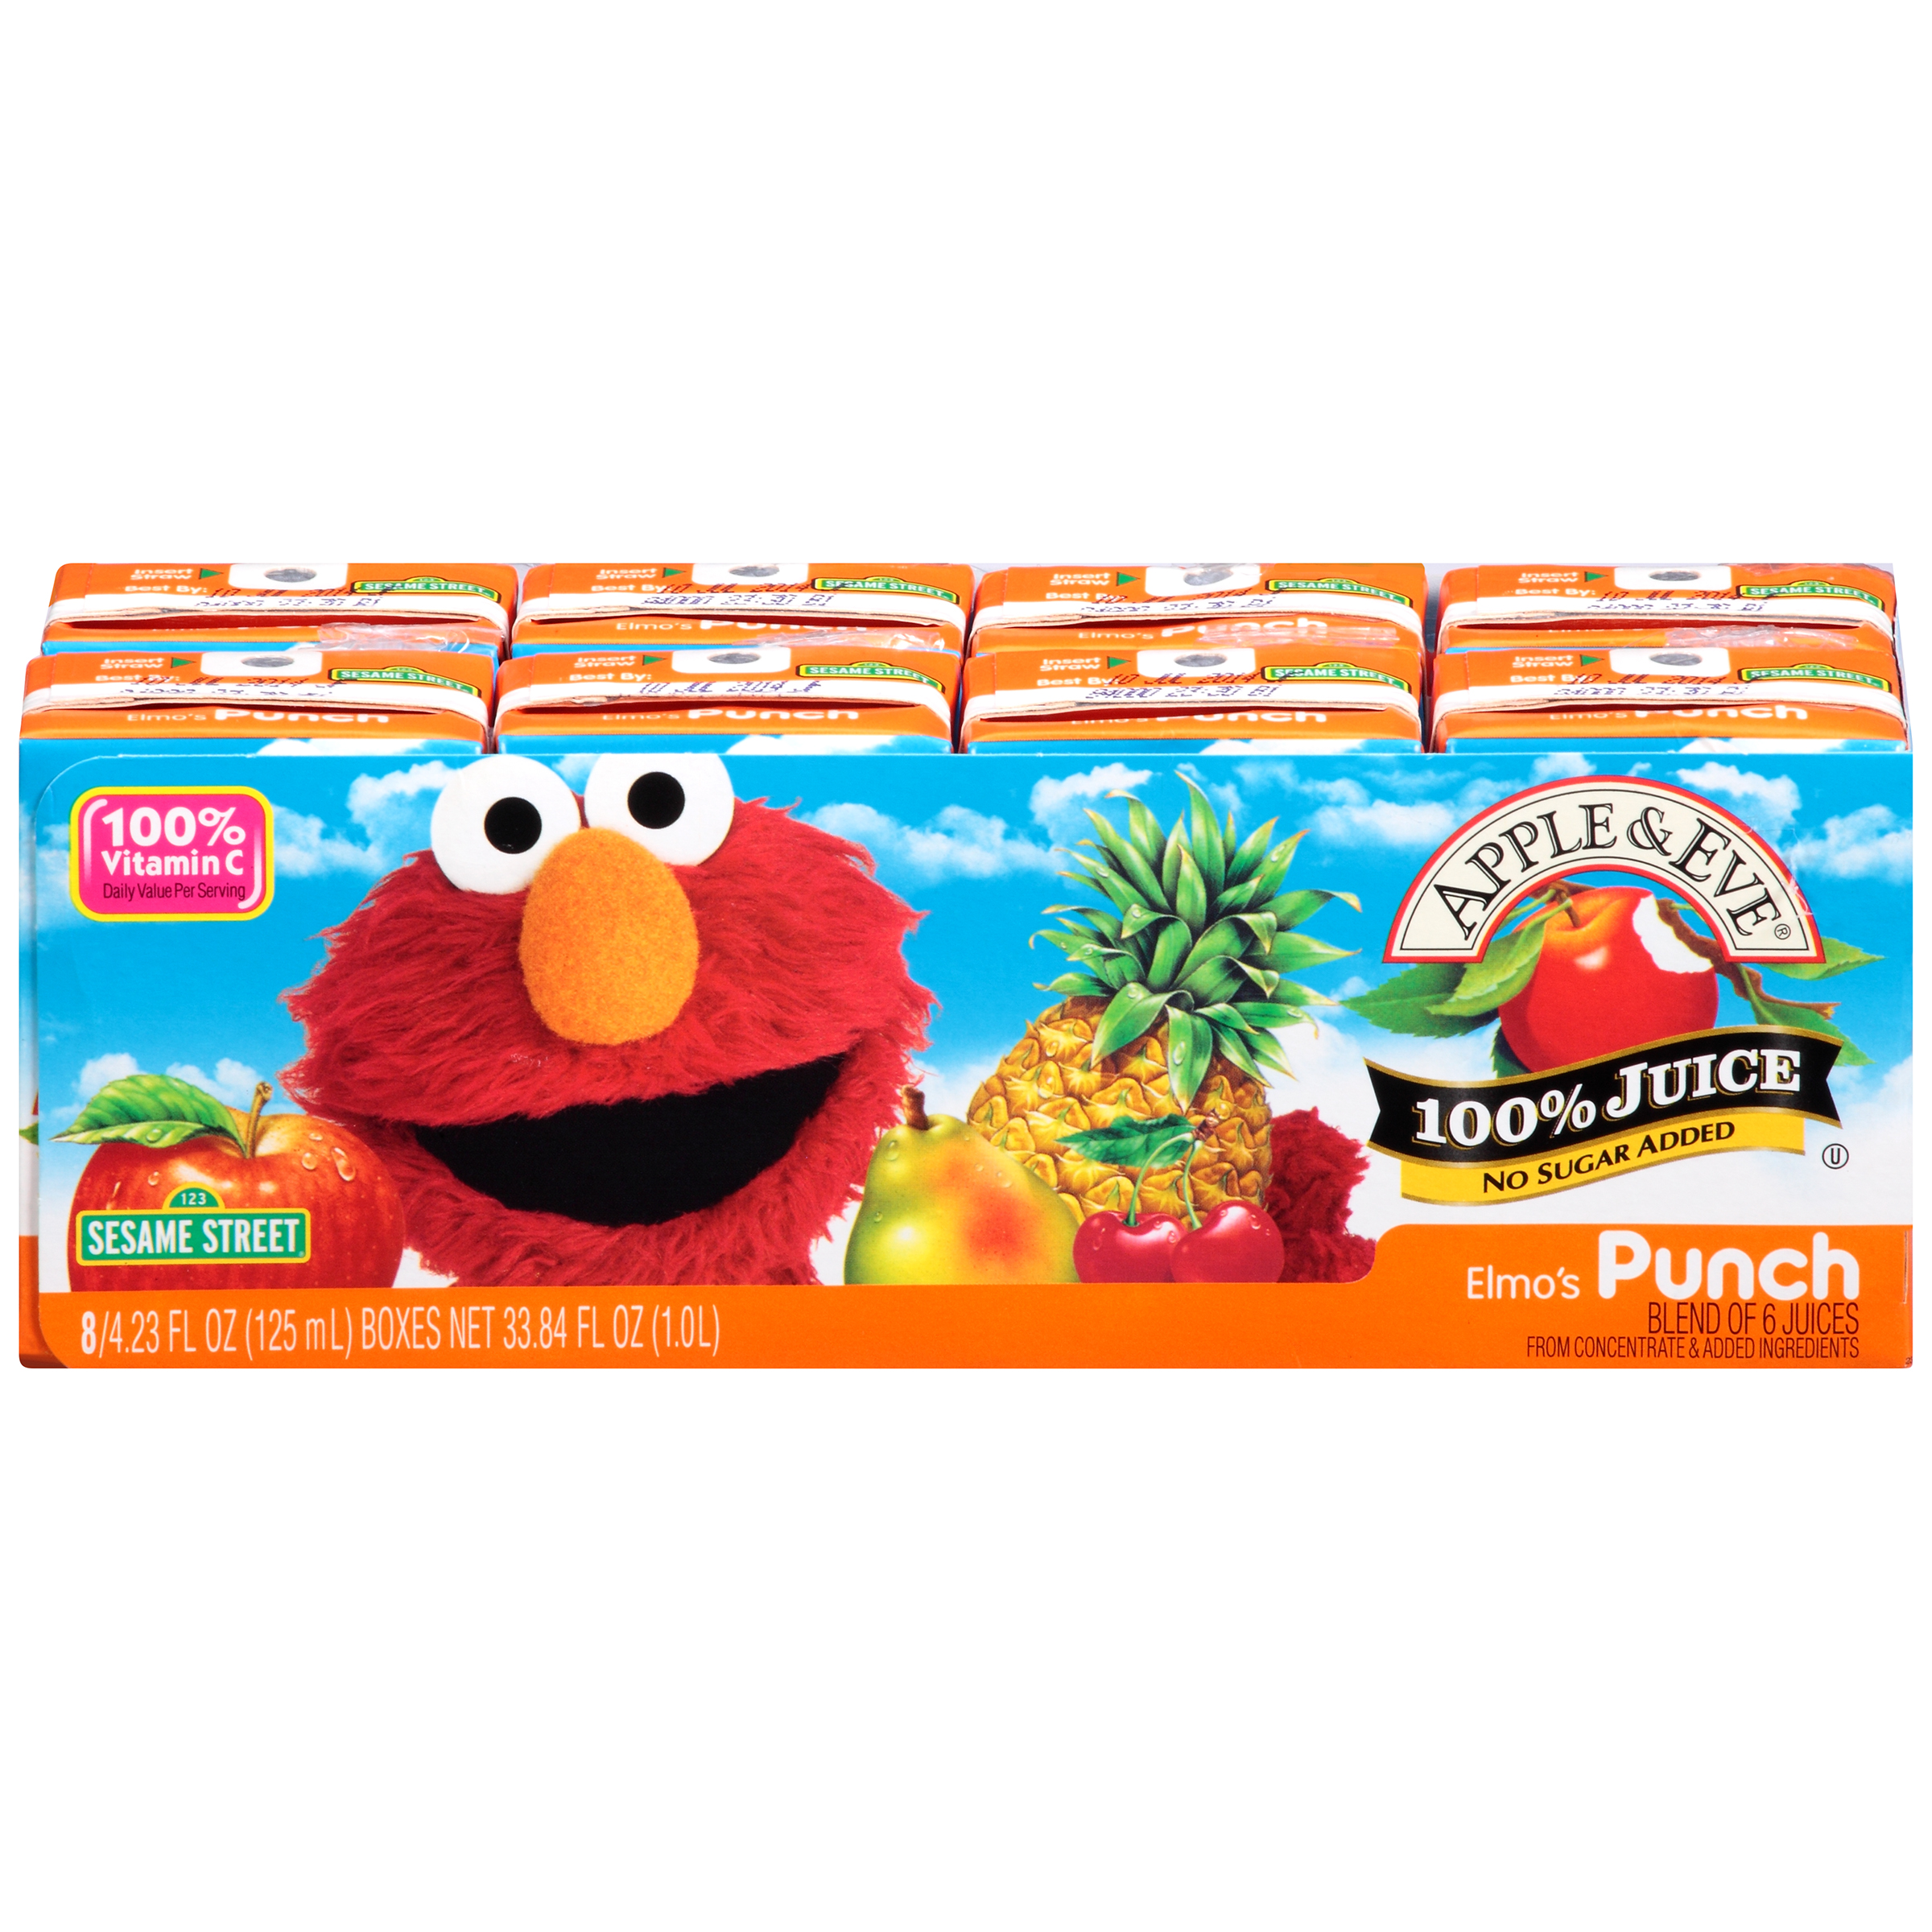 Apple & Eve 100% Juice Drink, Elmo's Punch, 4.23 Fl Oz, 8 Count by Apple & Eve